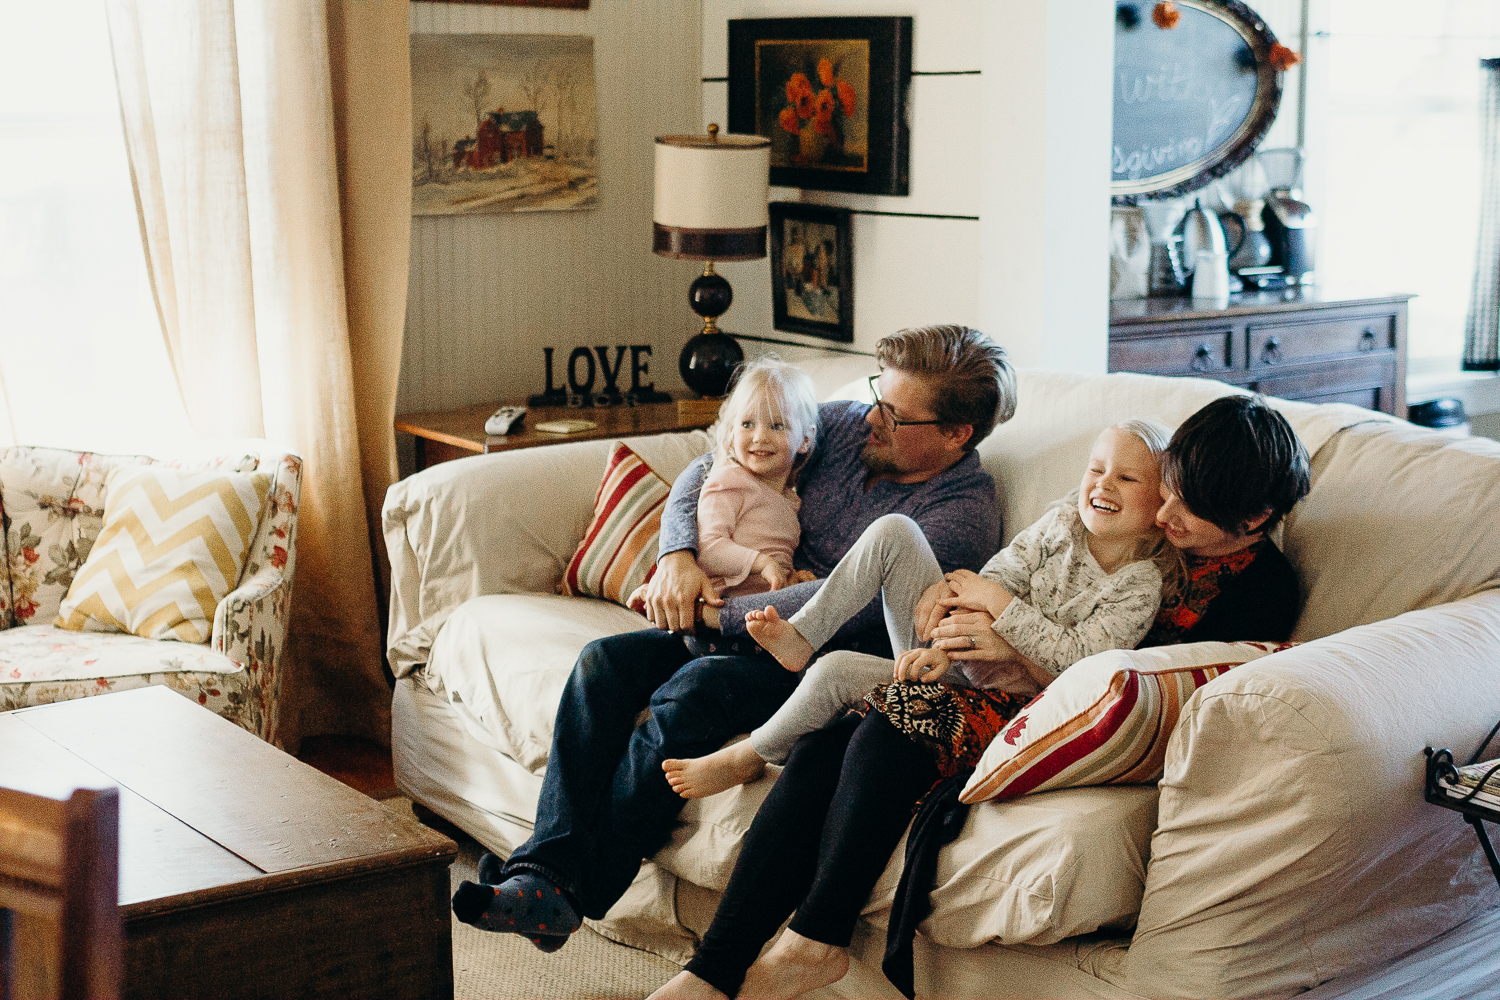 lifestyle-family-inhome-kalimikelle-34.jpg